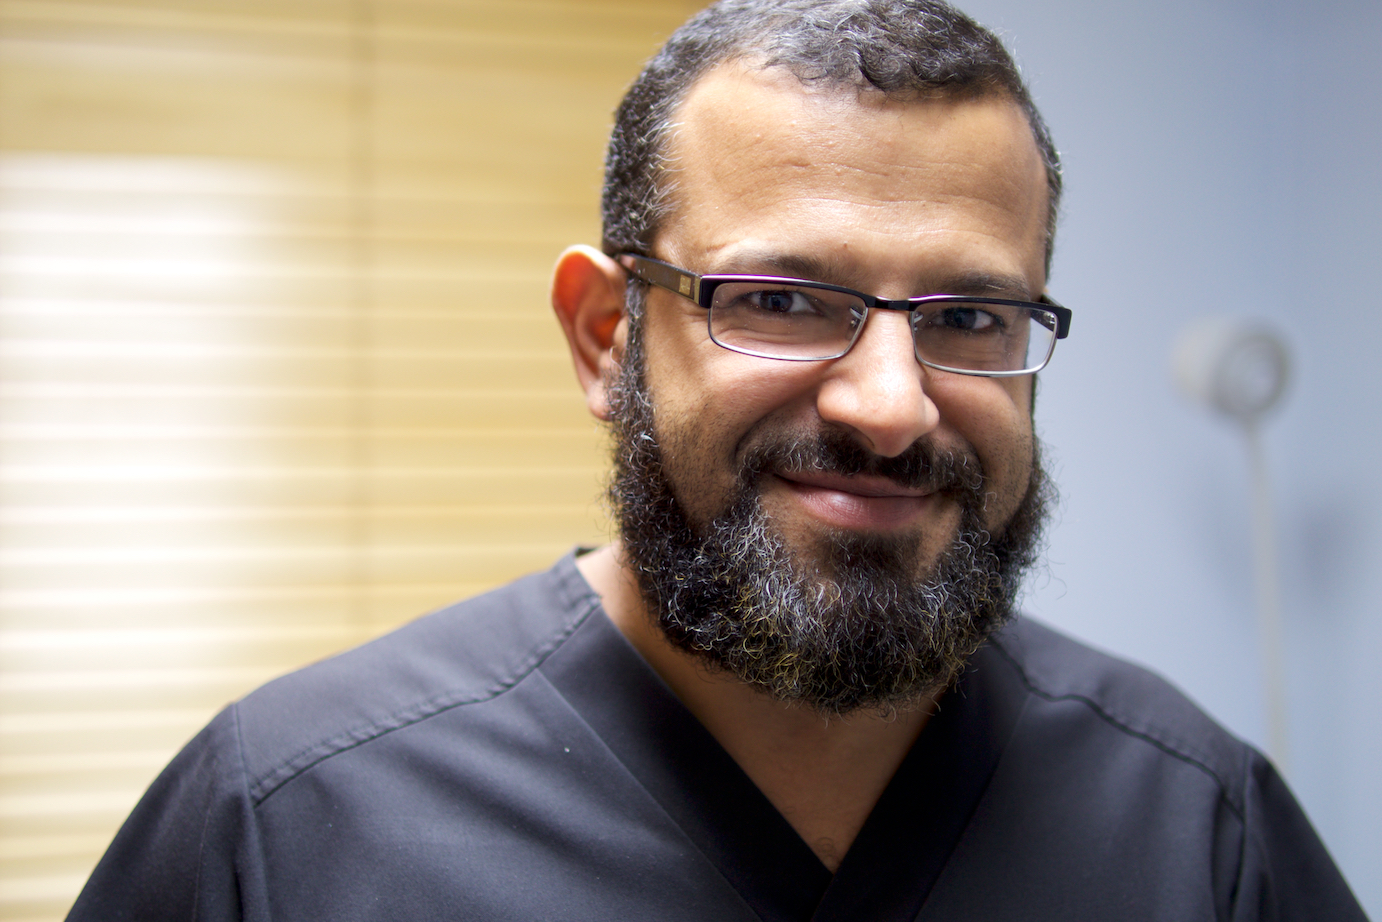 Dr. Islam Tafish, volunteer neurologist at MASS